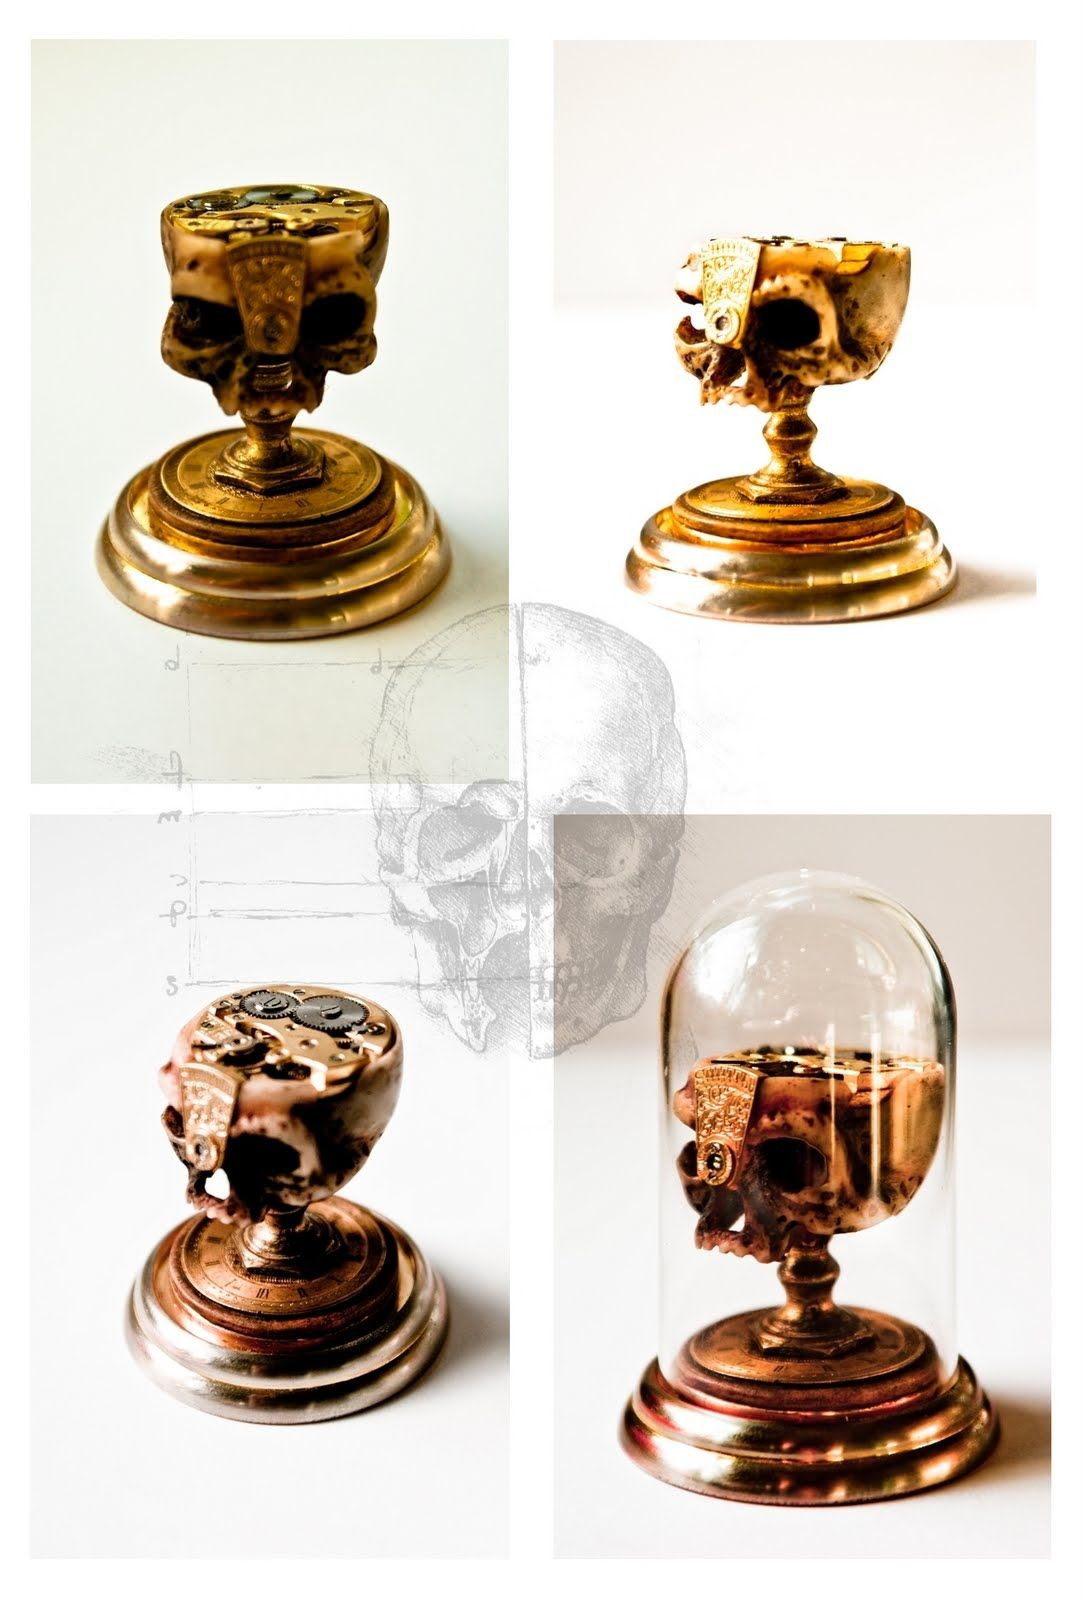 Decorative hand carved bone skull mounted under miniature glass dome.